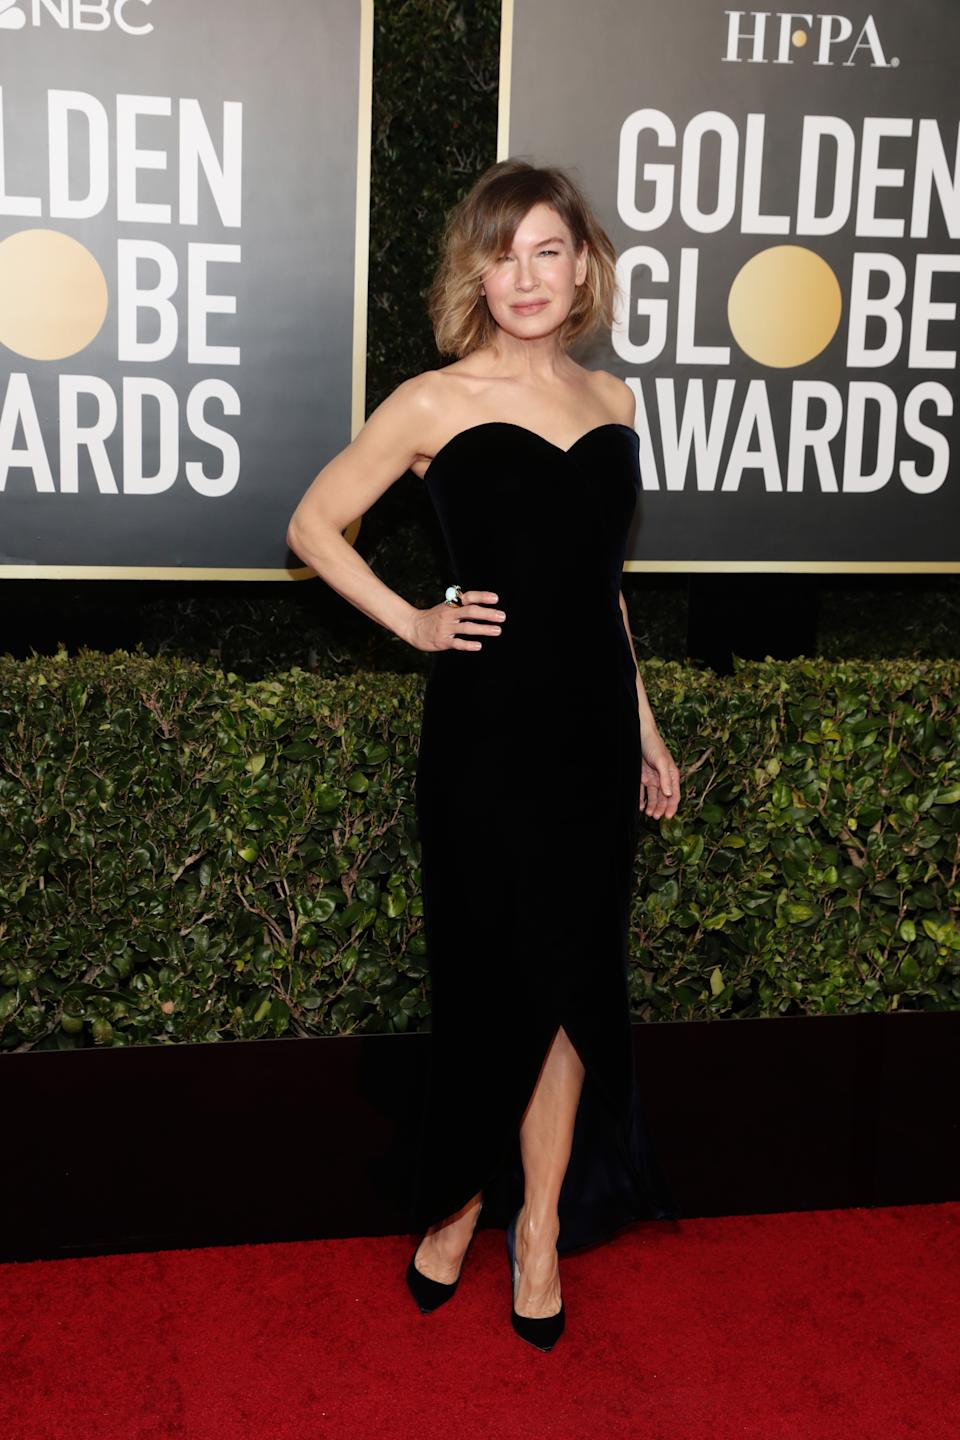 Renée Zellweger attends the 78th Annual Golden Globe Awards held at The Beverly Hilton and broadcast on February 28, 2021 in Beverly Hills, California.